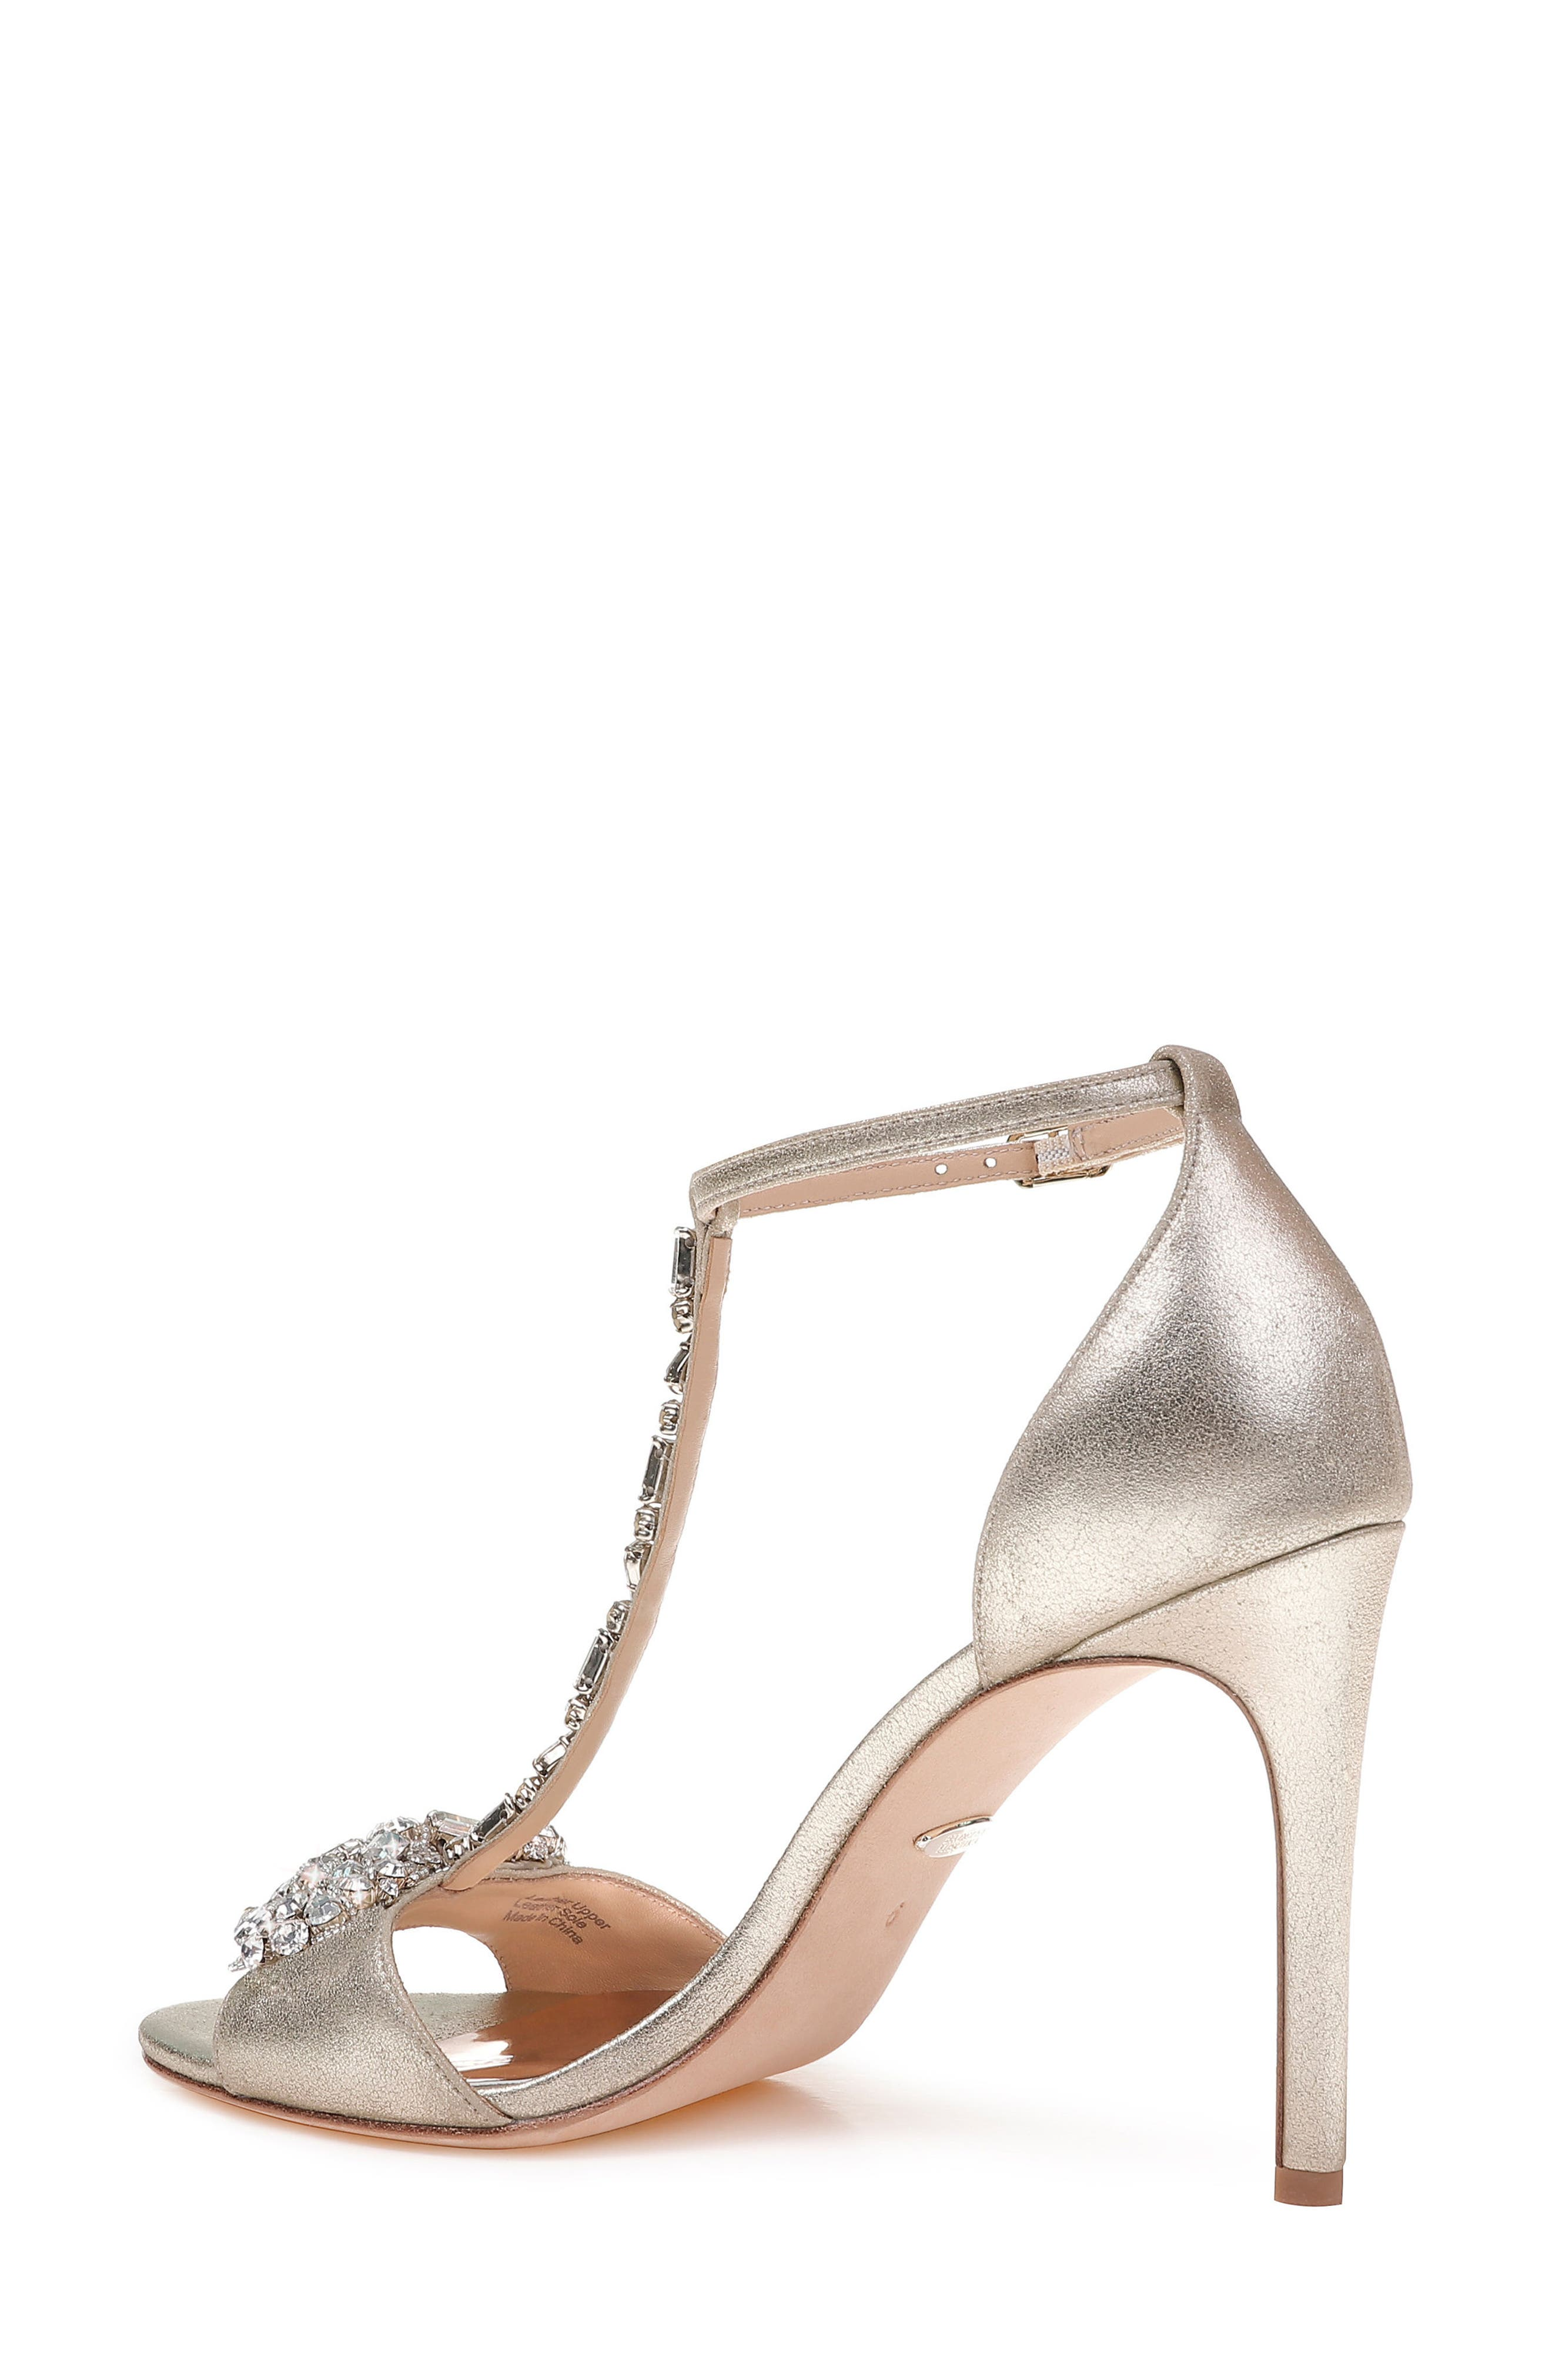 Pascale T-Strap Sandal,                             Alternate thumbnail 2, color,                             PLATINUM METALLIC SUEDE